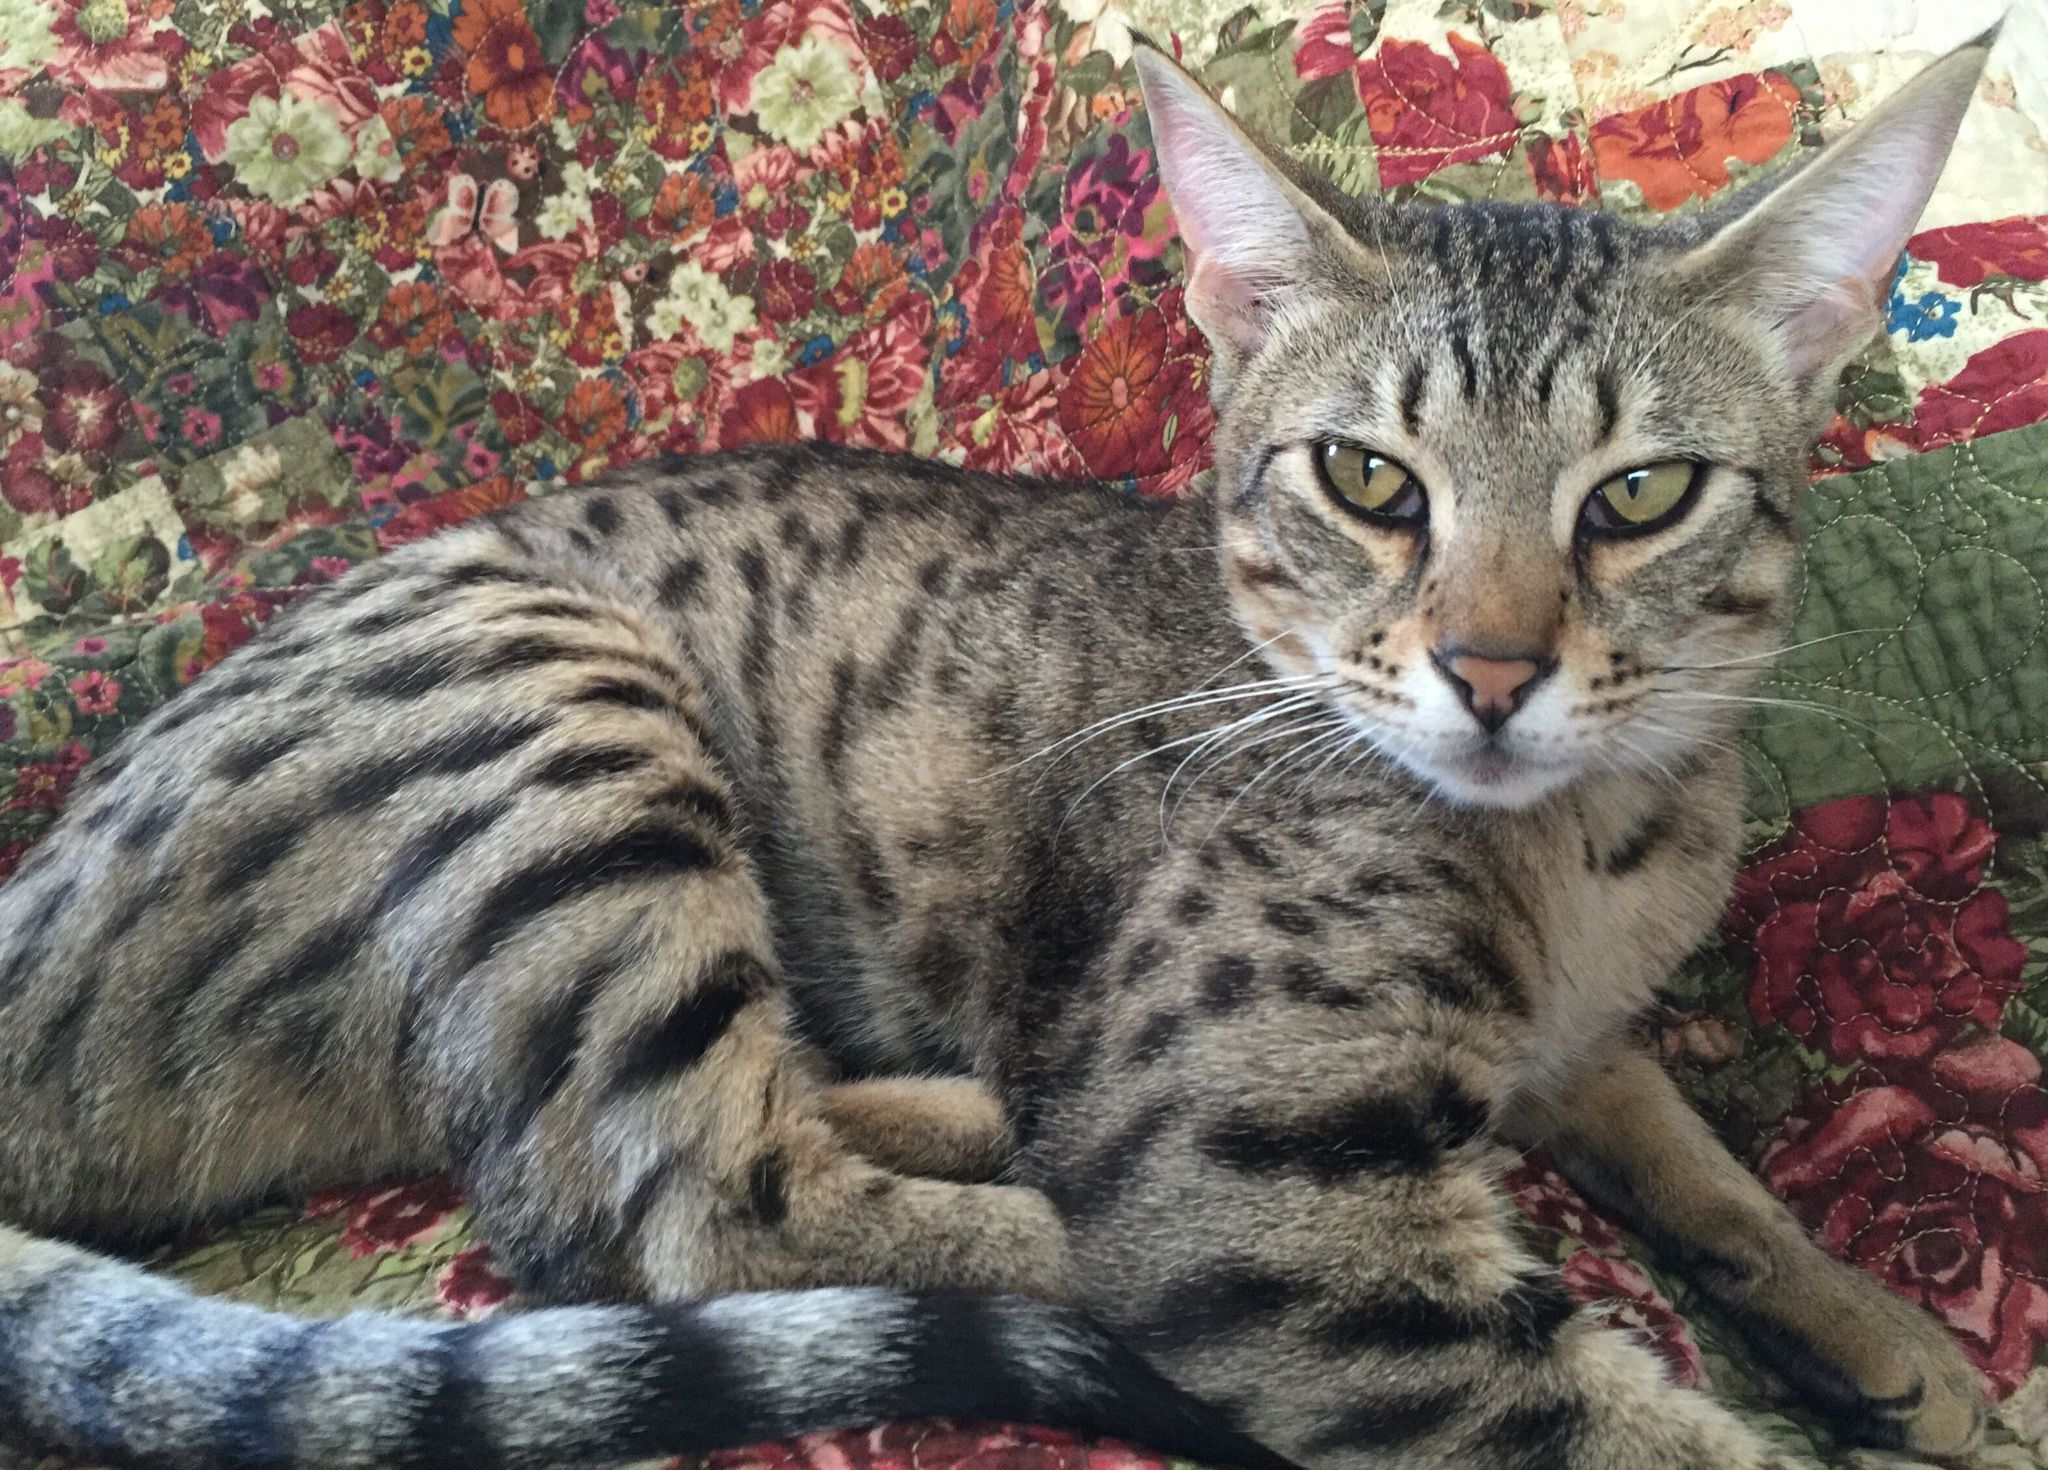 Savannah Cat Audrey Hepburn She Is Now 8 Months Old And A Real Beauty Audrey Loves The Water And To Play Fetch She Also En Savannah Cat Savannah Chat Cats